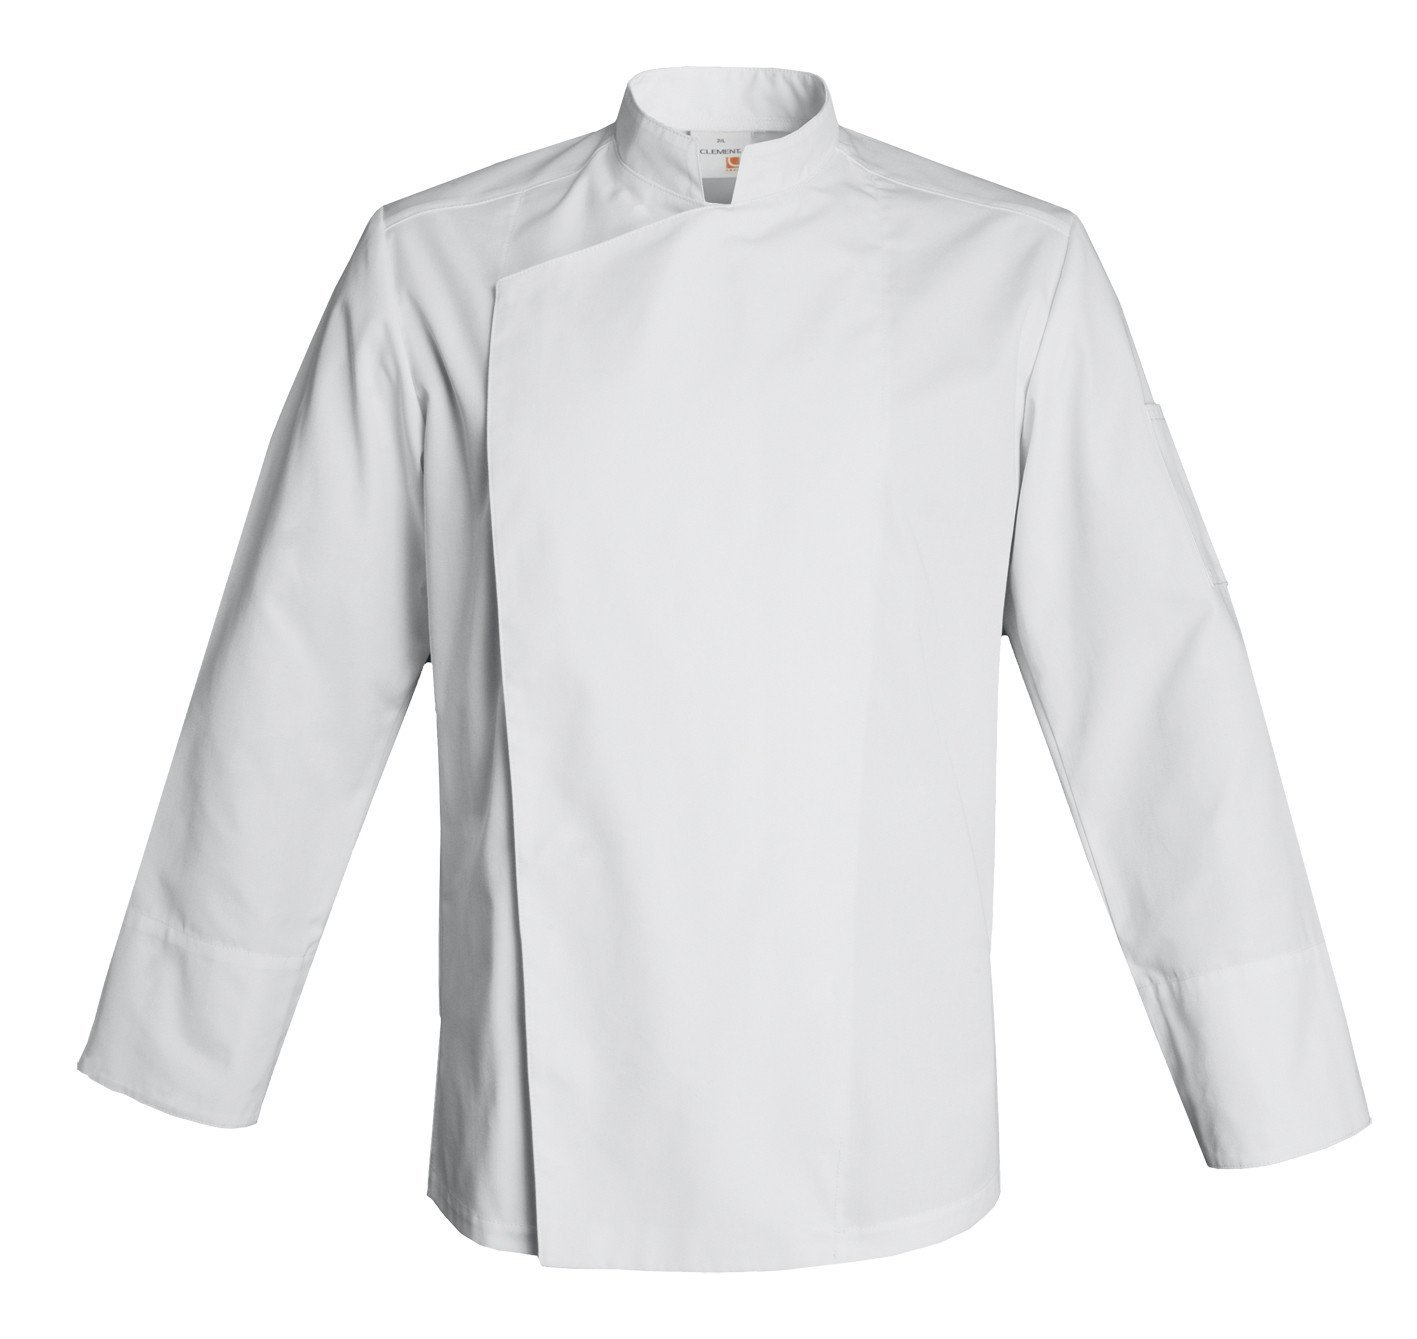 FIRENZE Long Sleeve Culinary Chef Jacket with Mandarin Collar by Clement Design (L - 40/42 - T2, White) by Clement Design USA